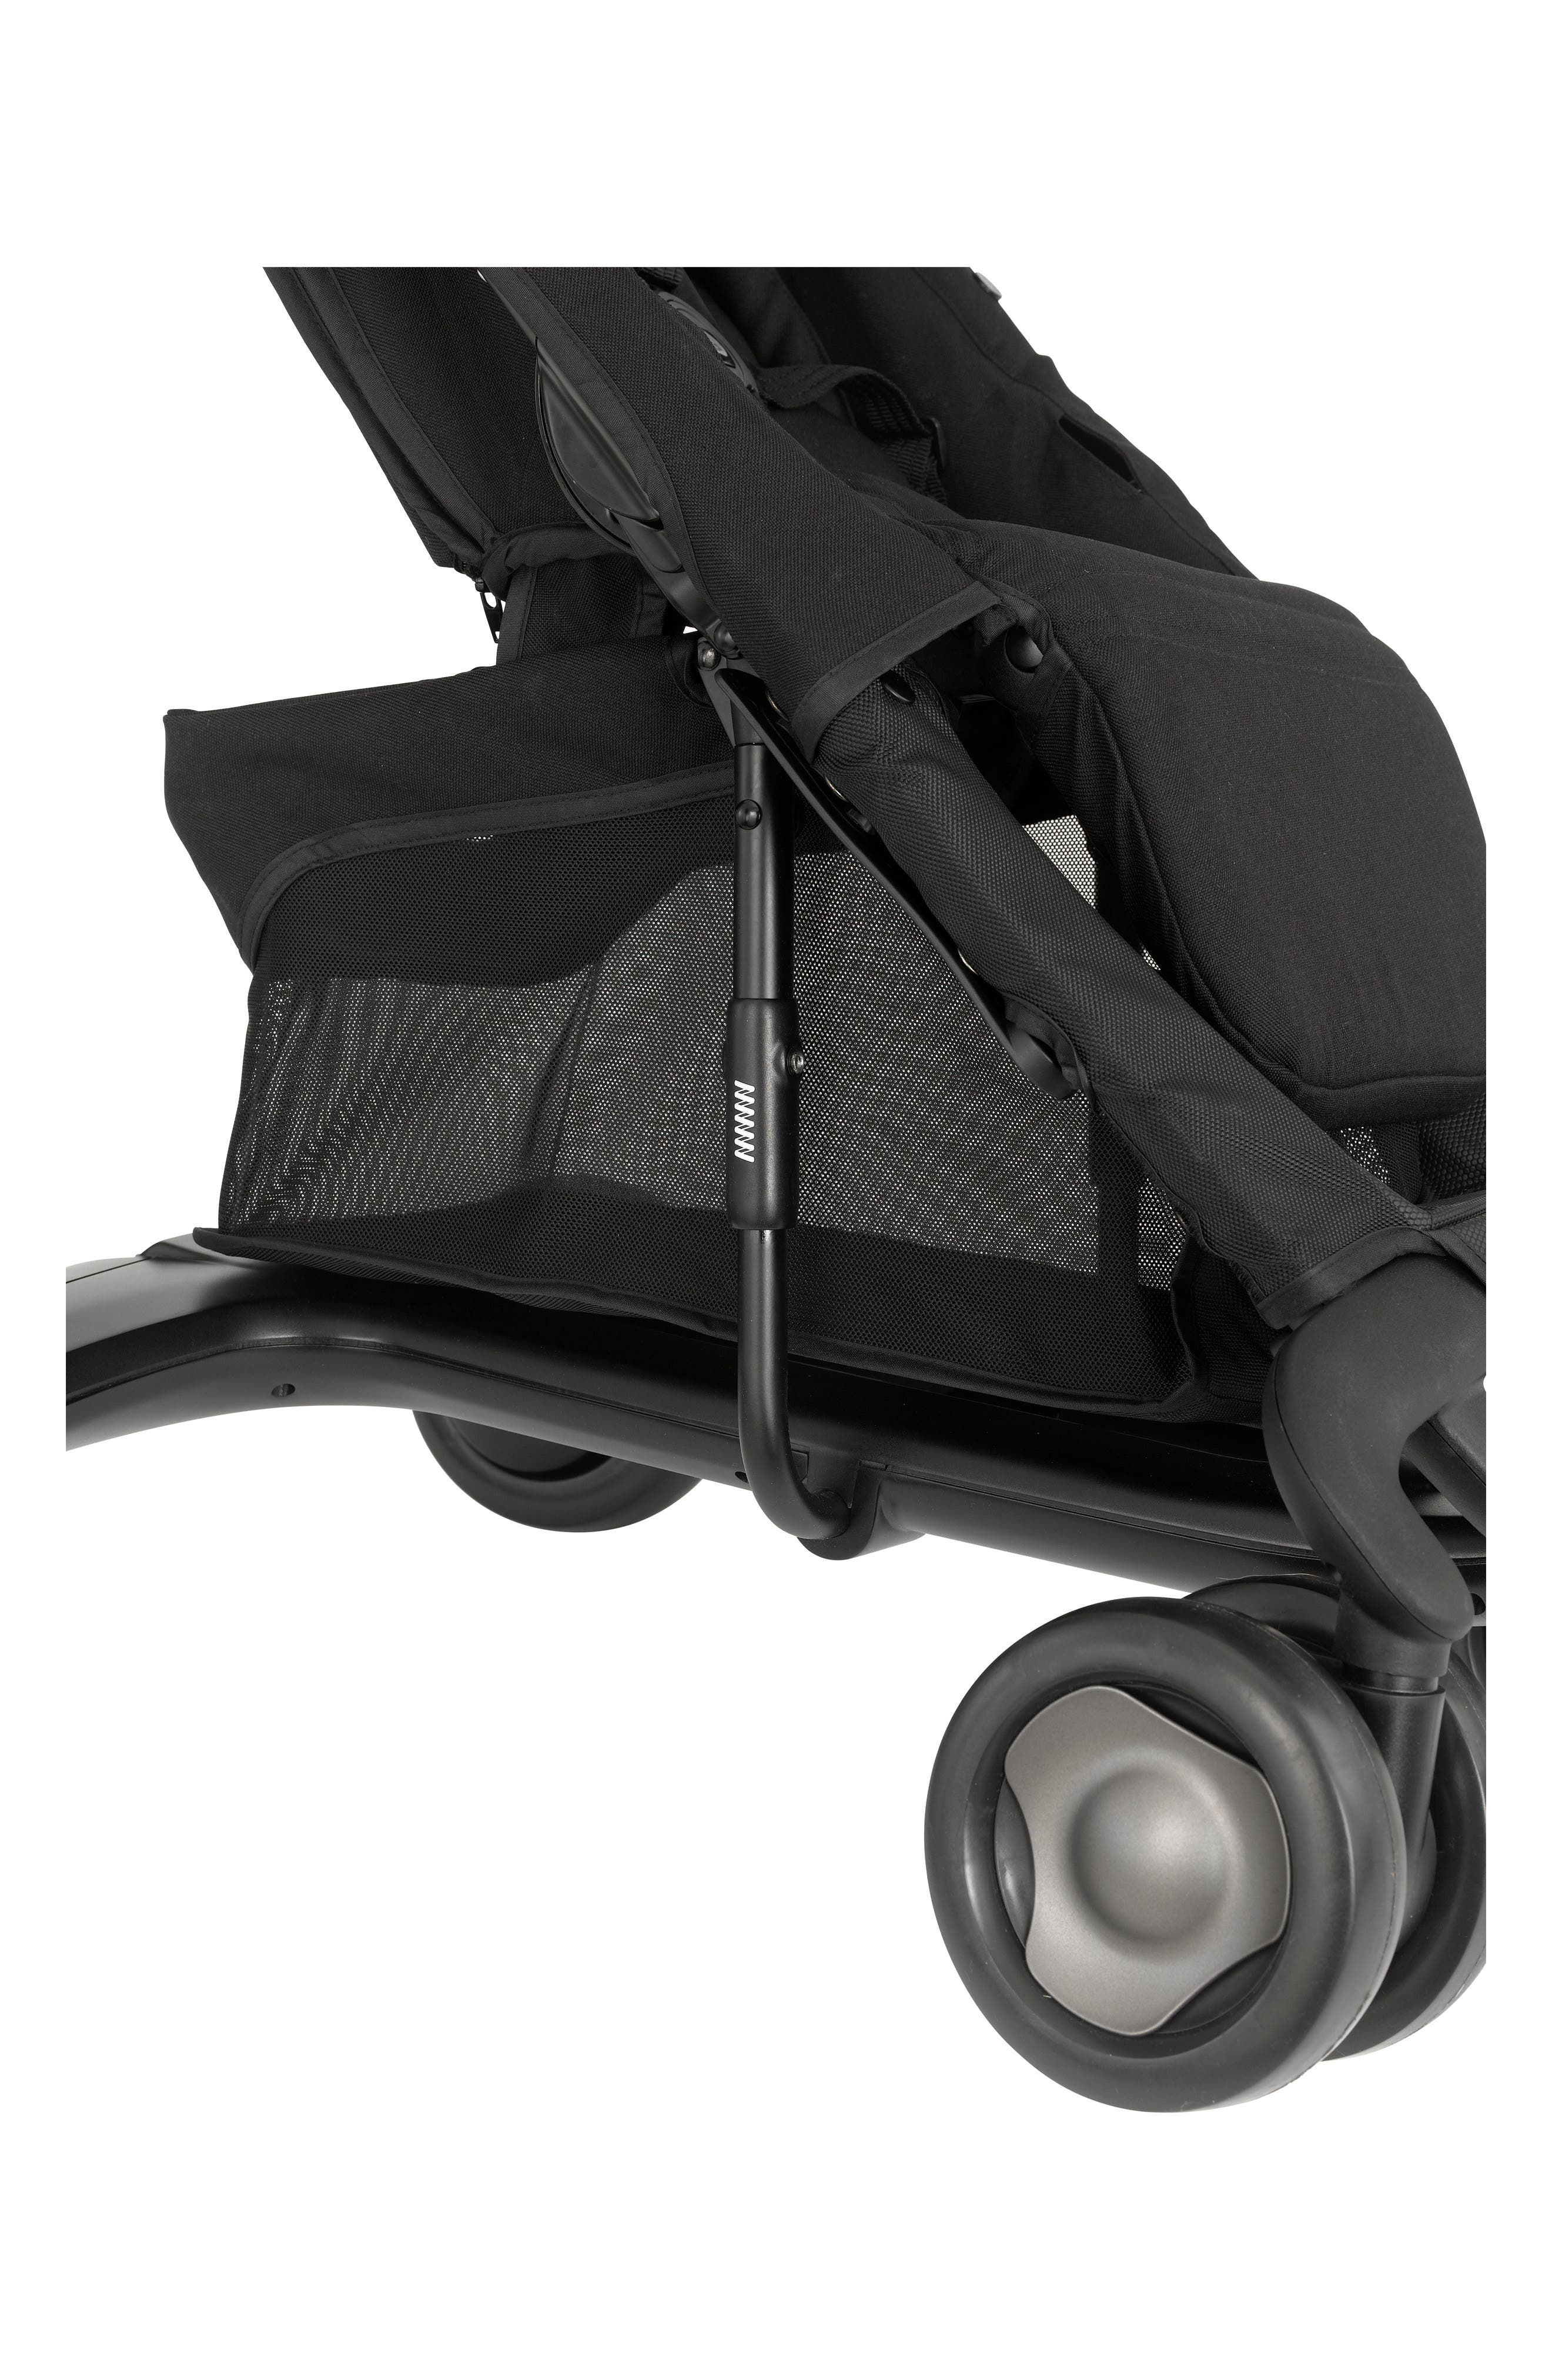 PEPP<sup>™</sup> Next Stroller,                             Alternate thumbnail 7, color,                             CAVIAR